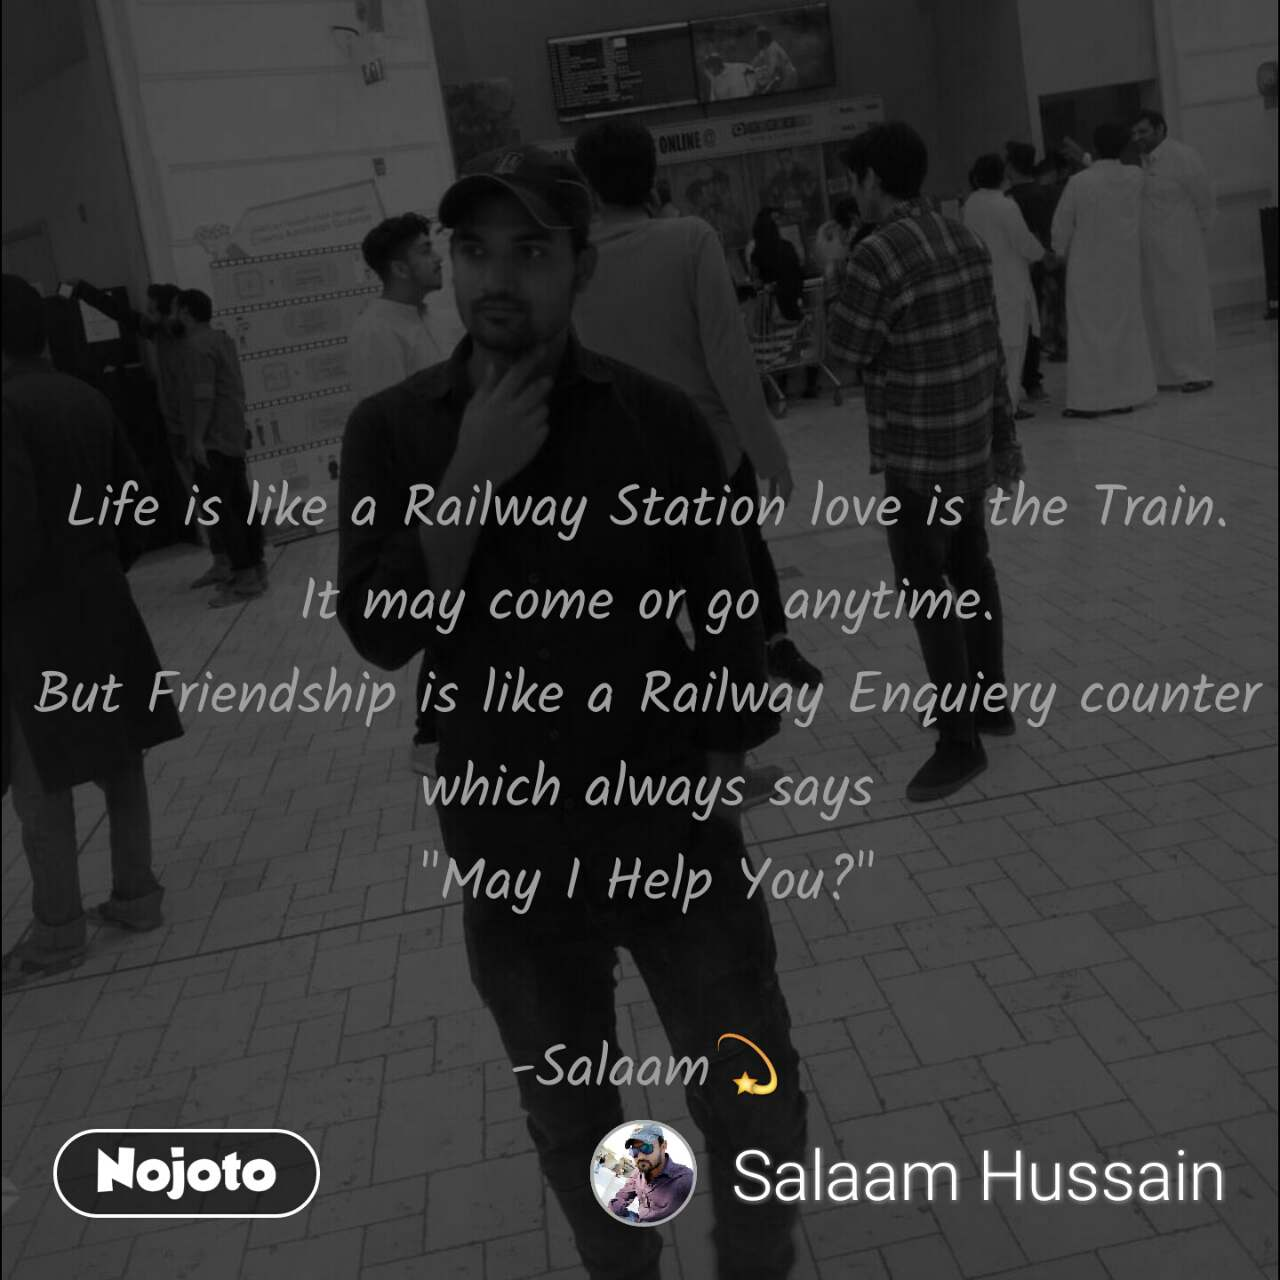 "Life is like a Railway Station love is the Train. It may come or go anytime. But Friendship is like a Railway Enquiery counter which always says ""May I Help You?""  -Salaam💫"